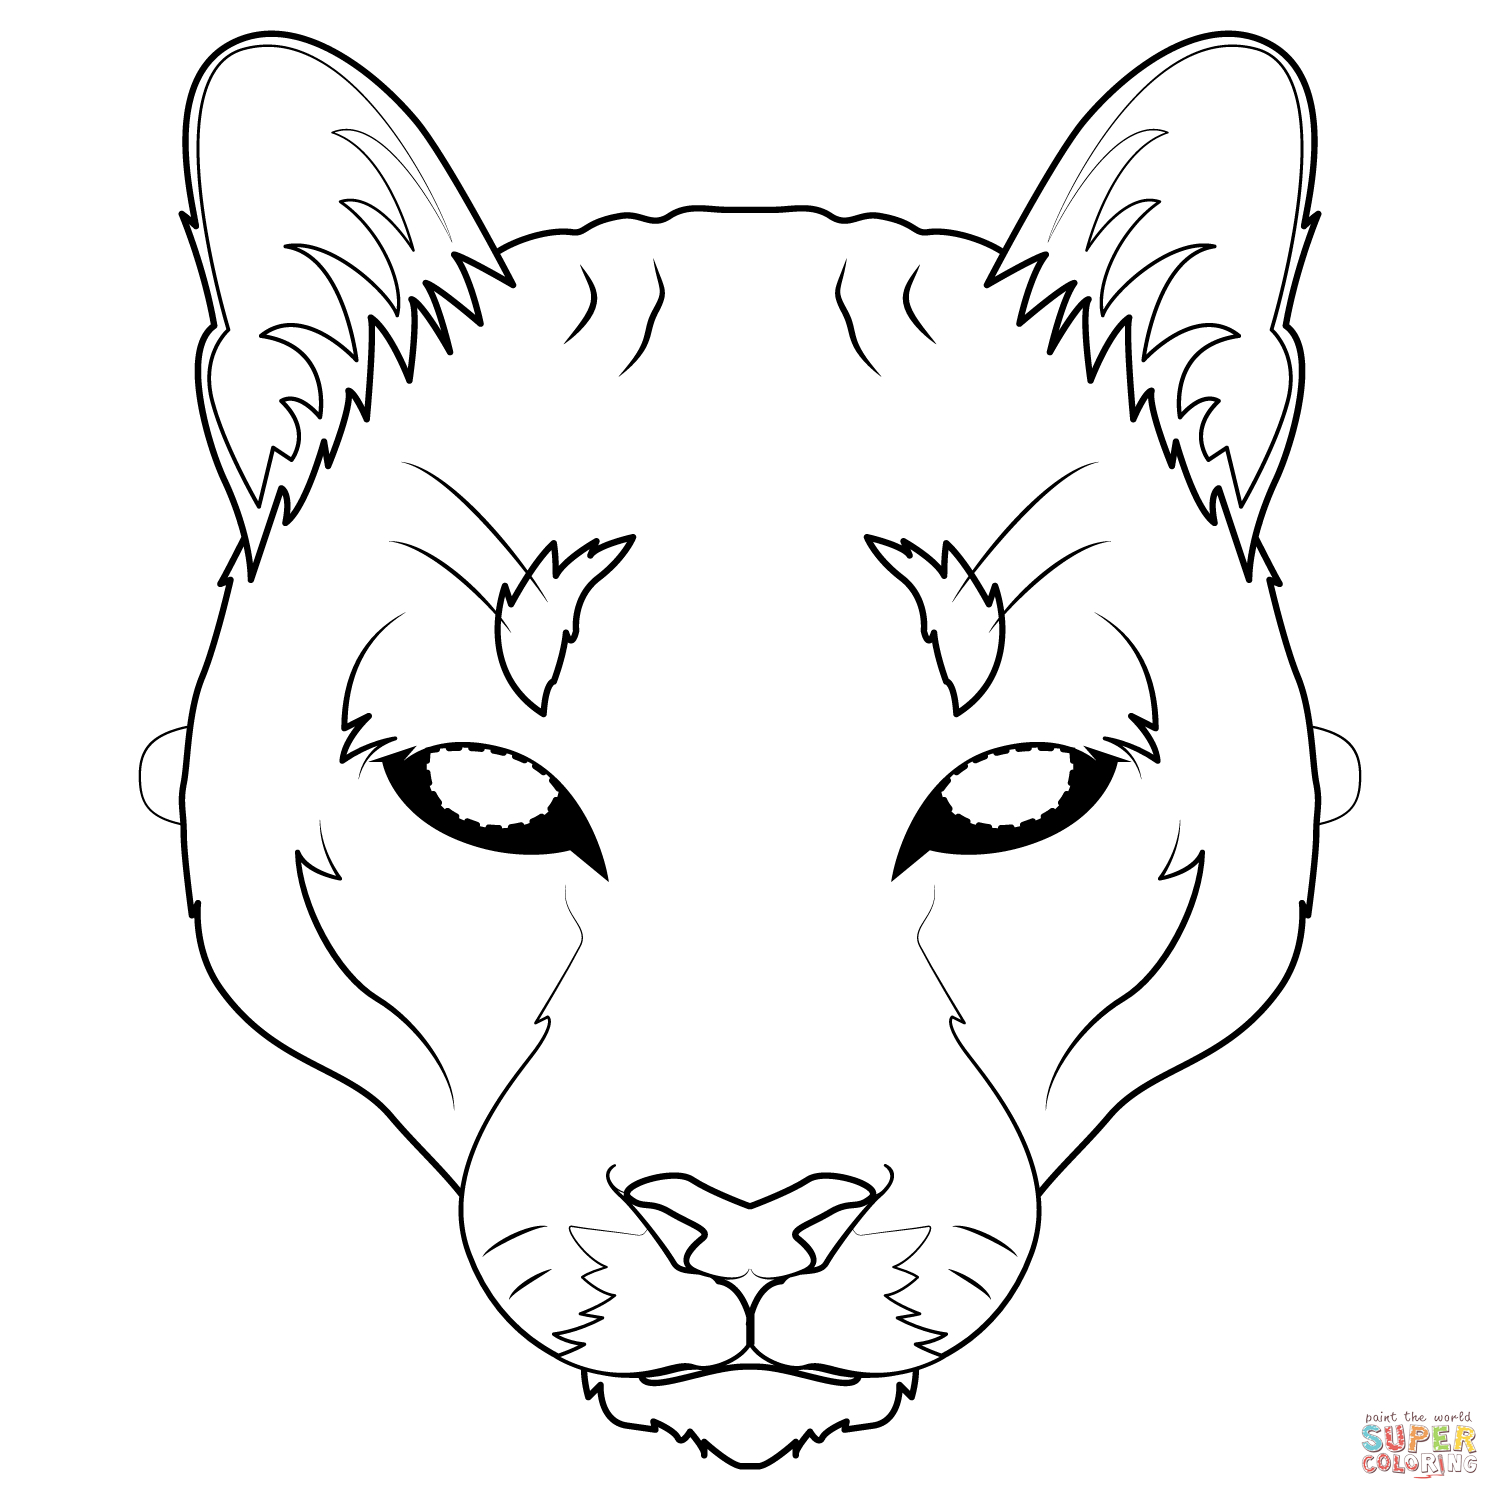 Mountain Lion Mask Coloring Page | Free Printable Coloring Pages - Free Printable Lion Mask